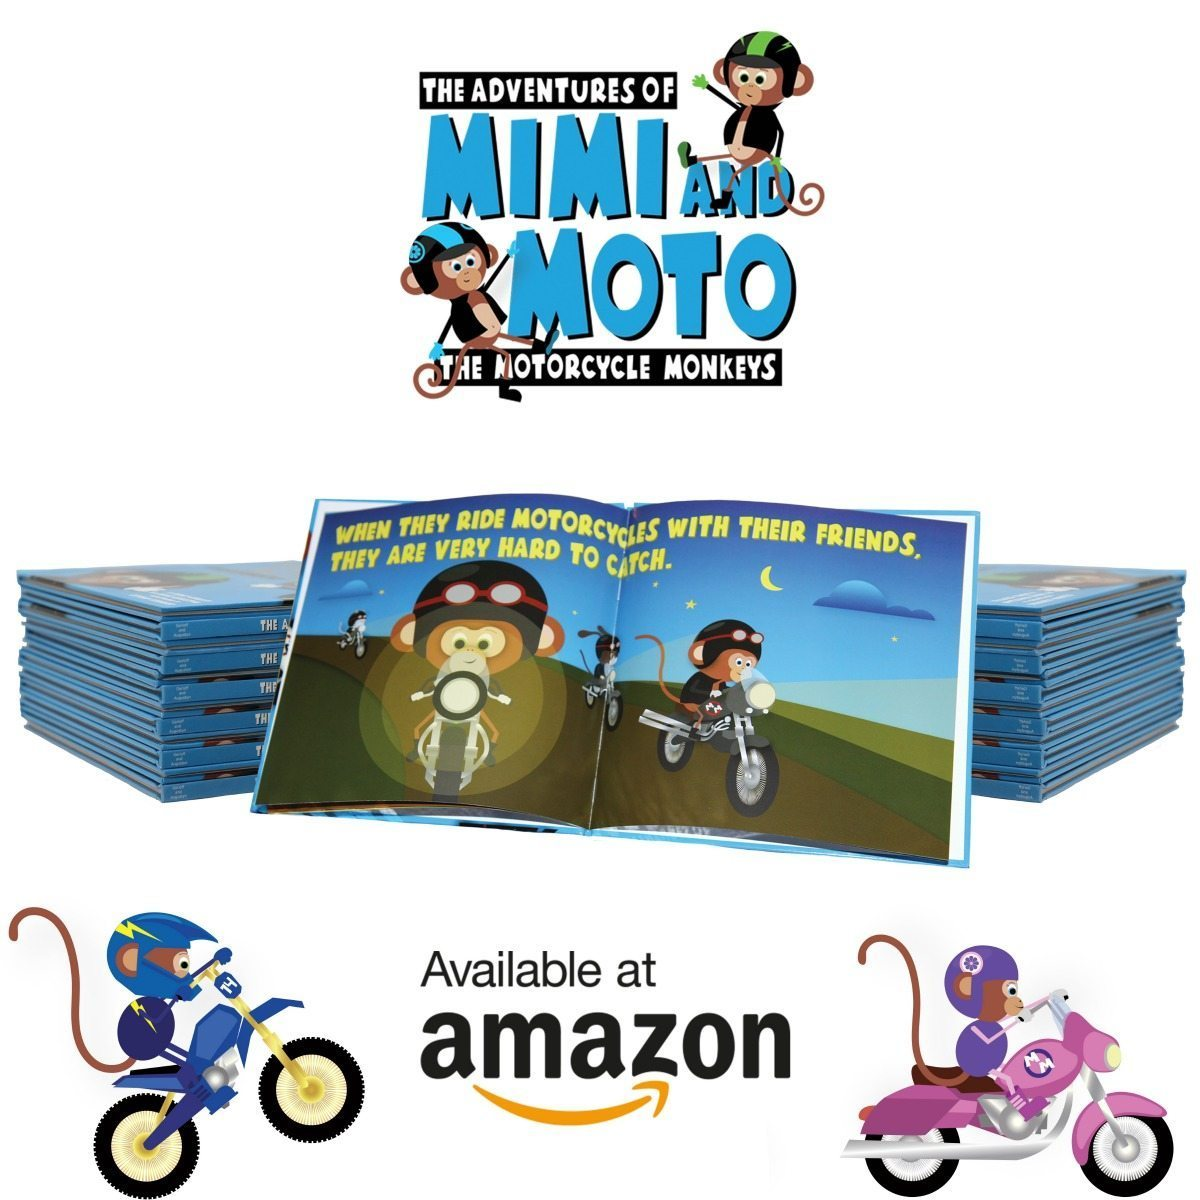 The Adventures of Mini and Moto